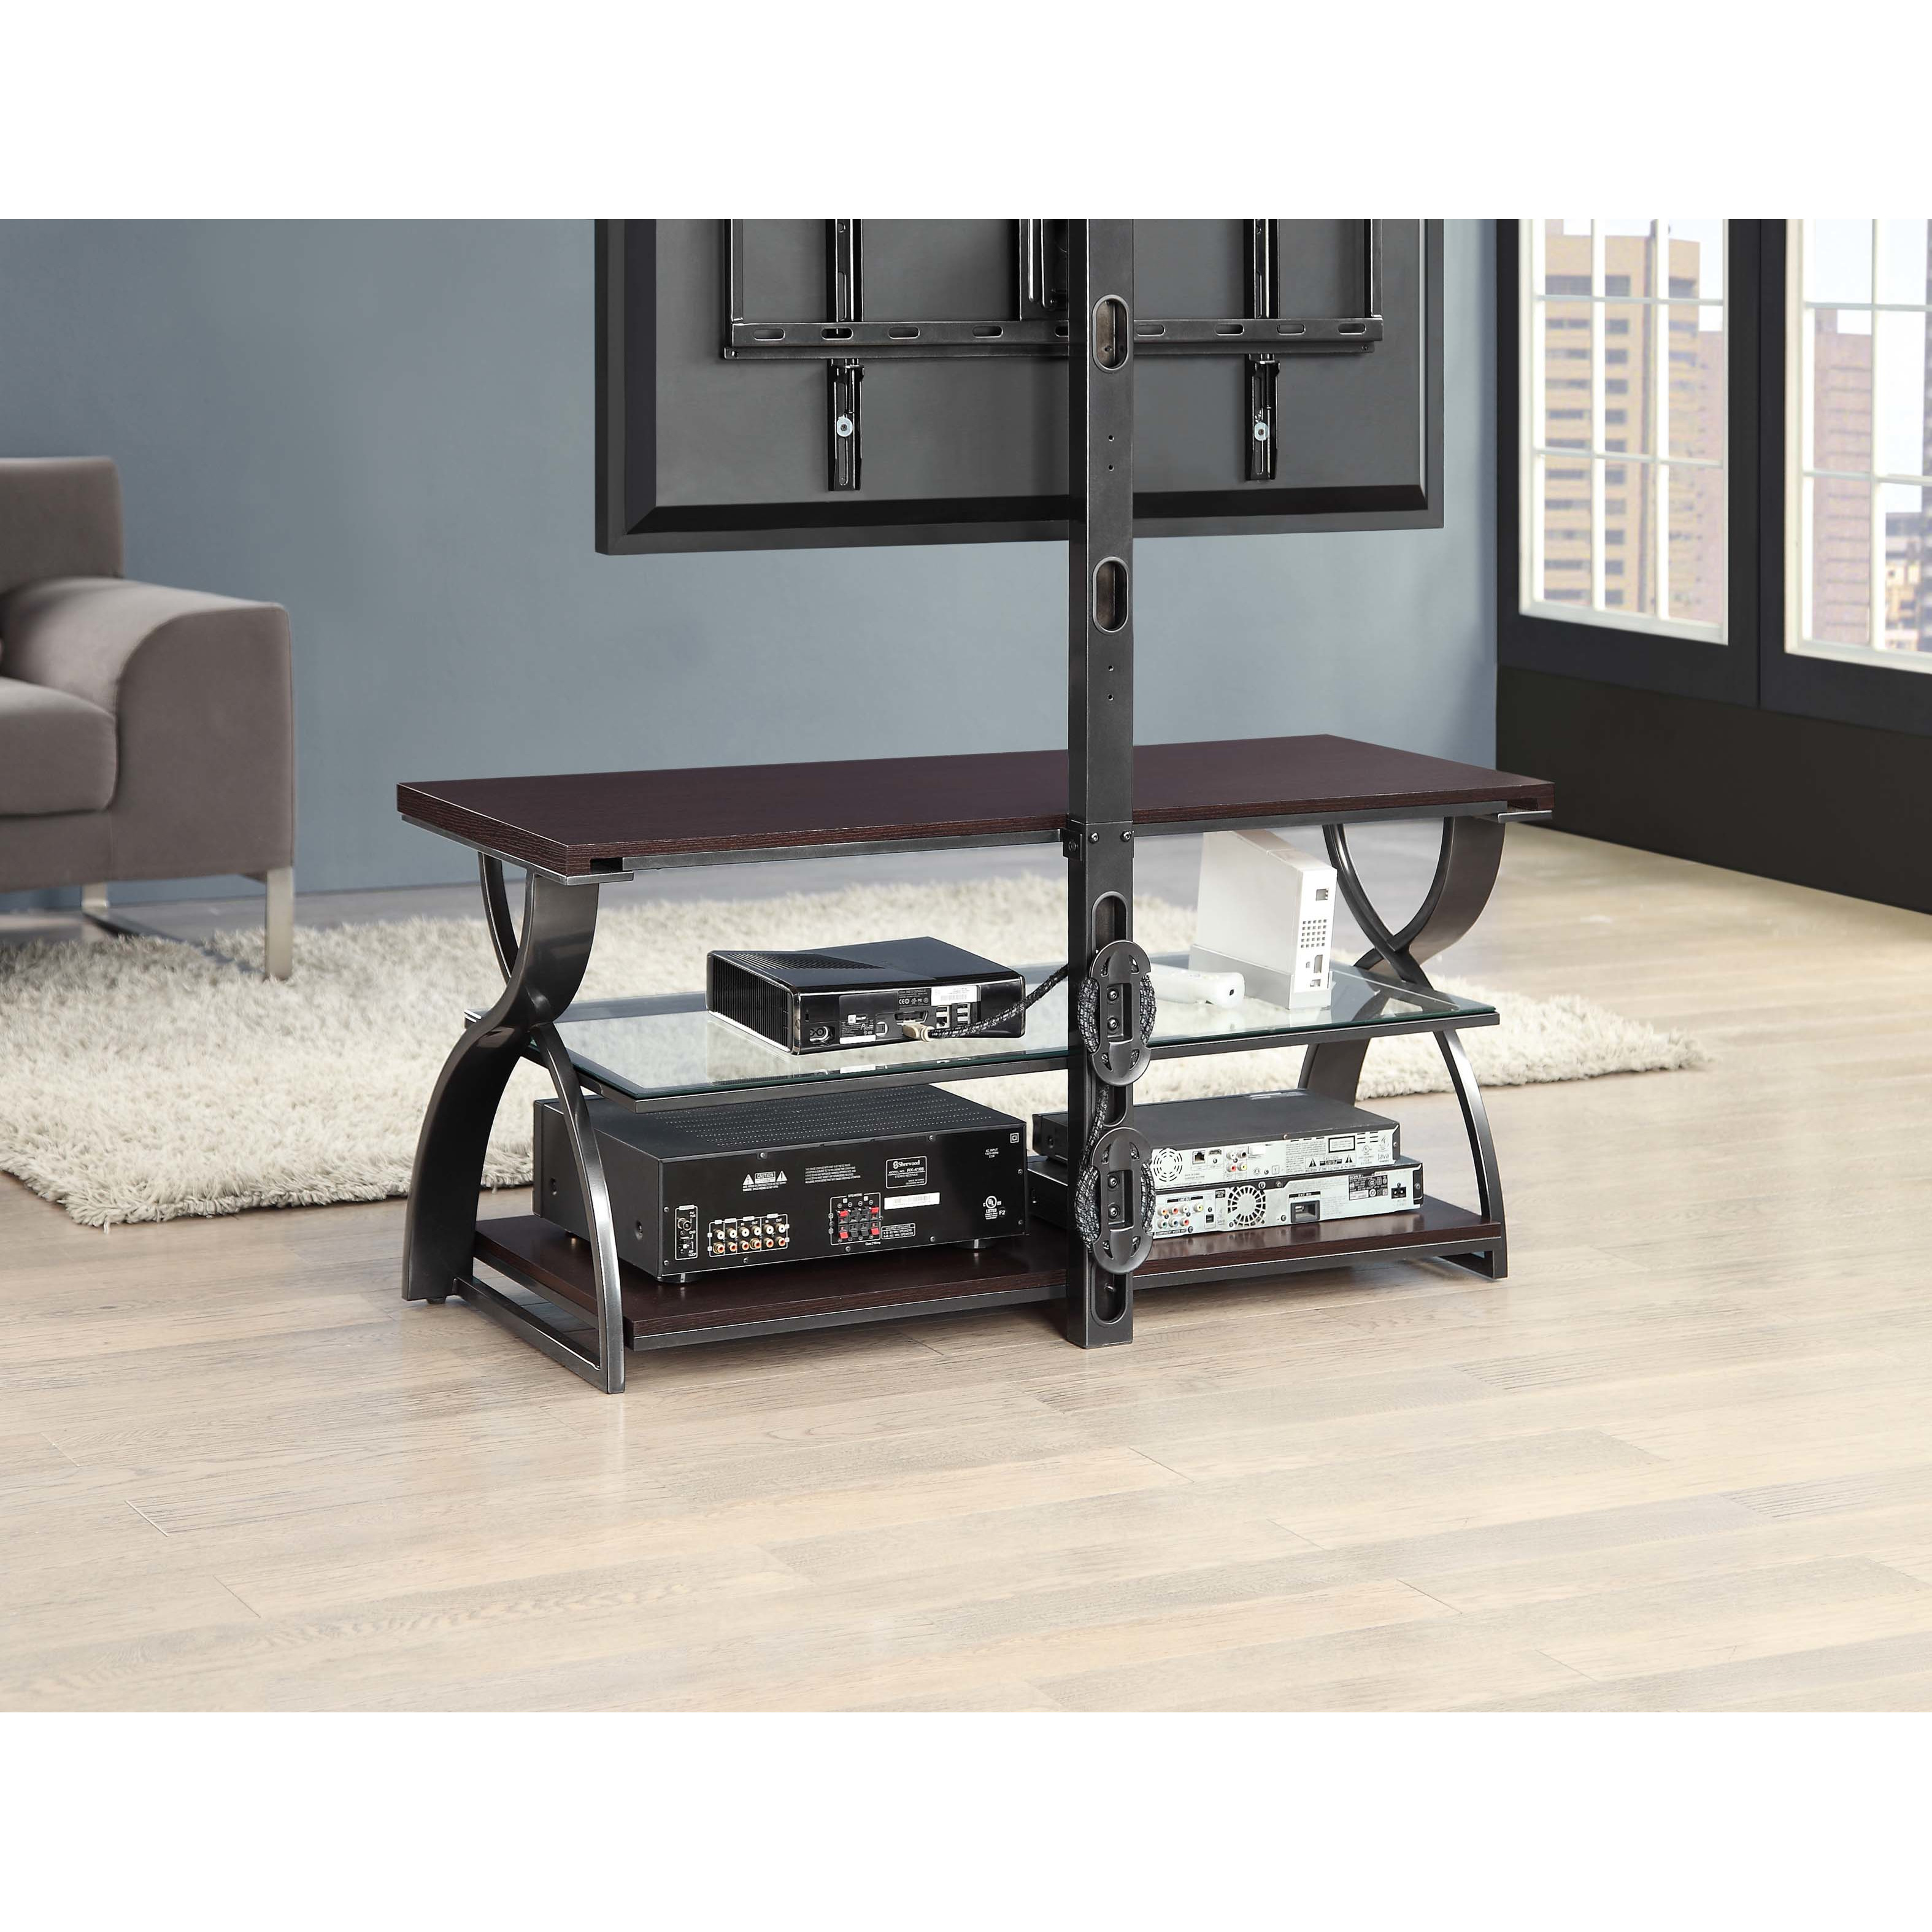 Gorgeous whalen tv stand for home furniture design with whalen 3-in-1 tv stand